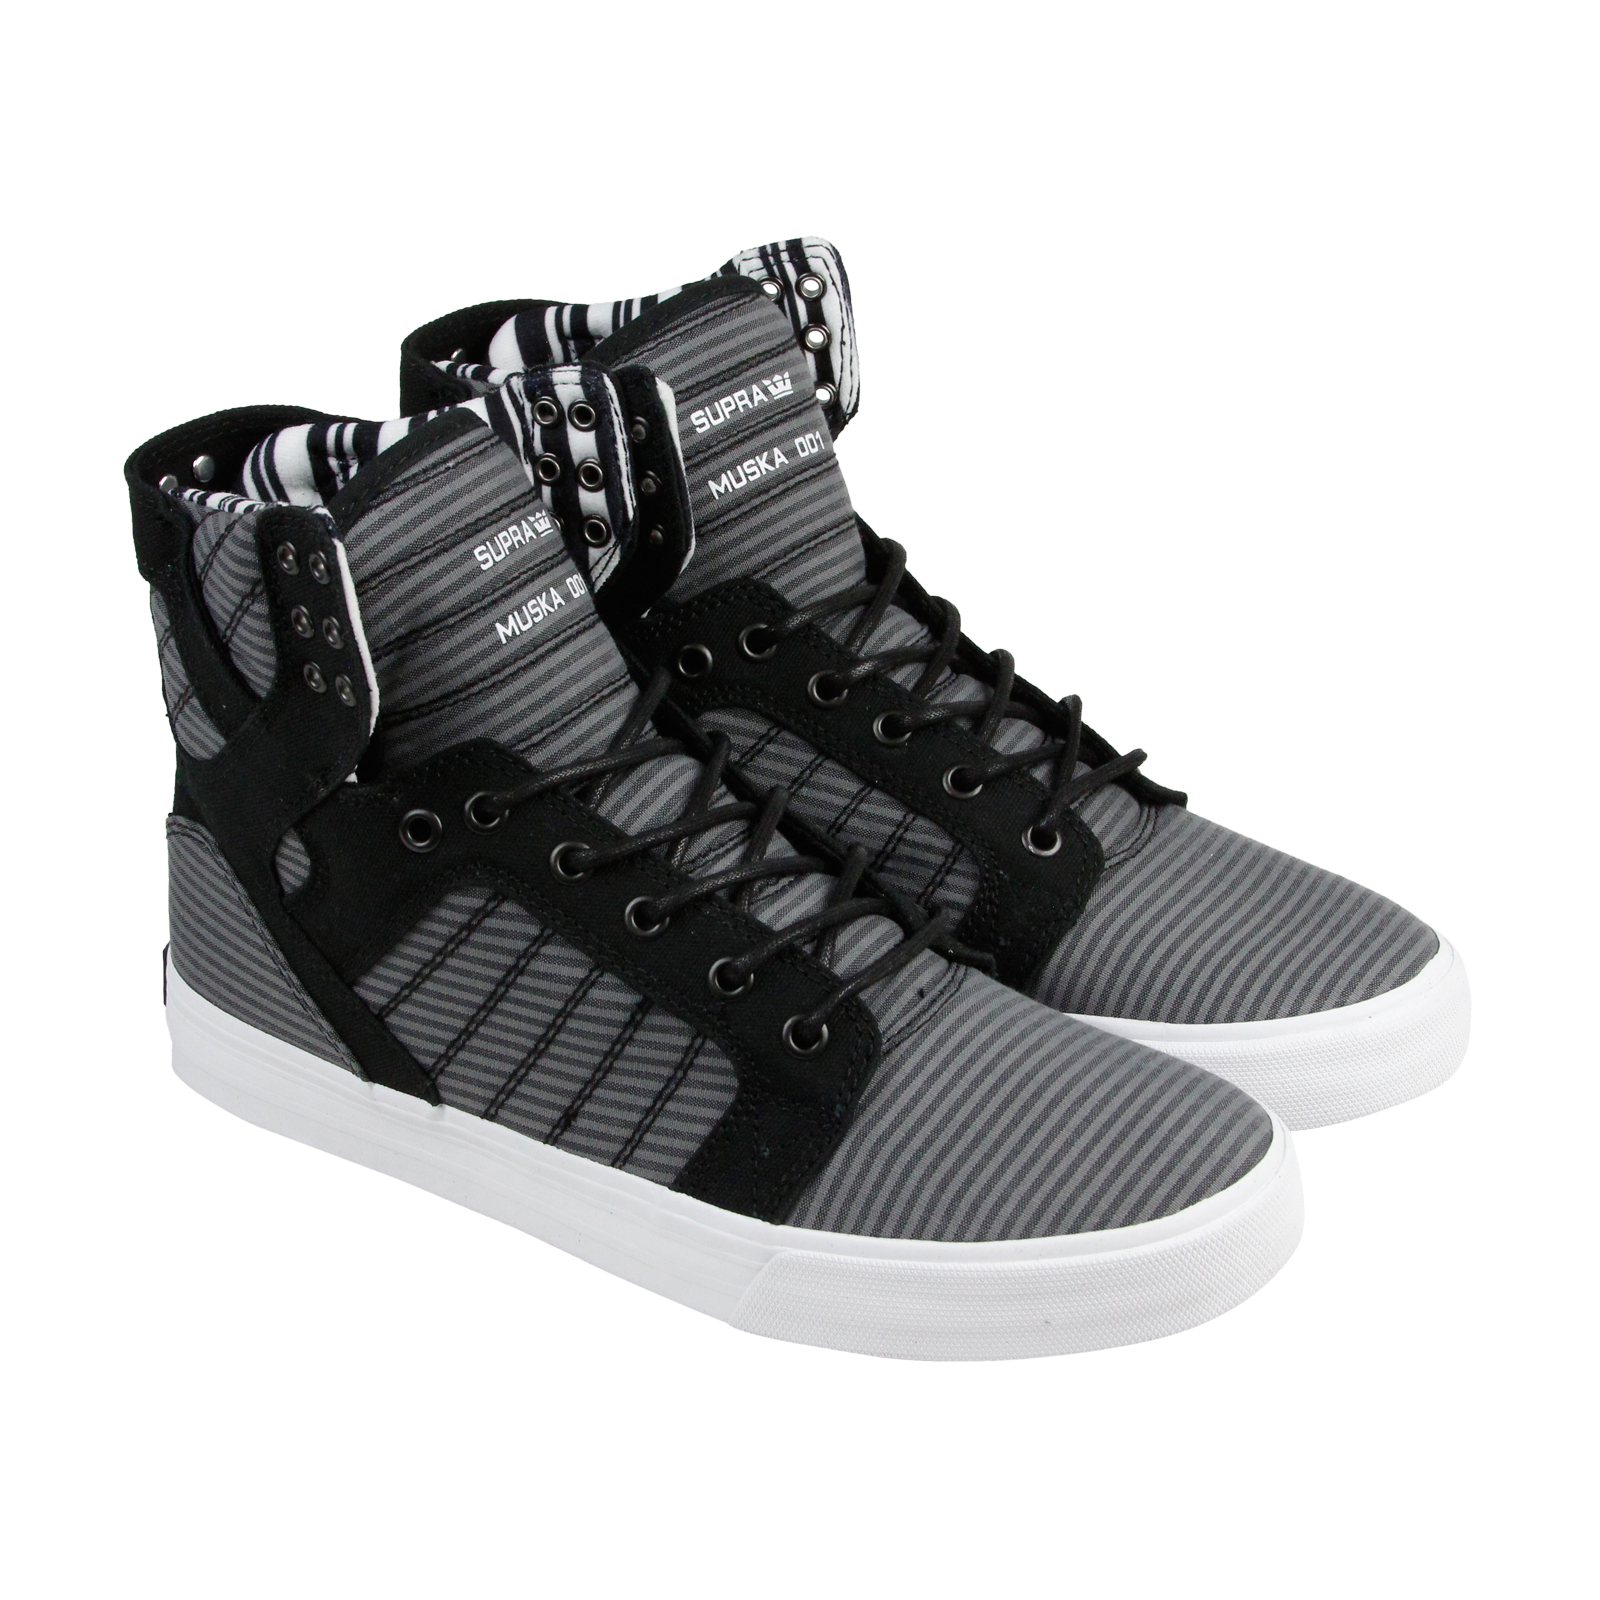 3fd10207875f Supra Skytop Mens Black Gray Canvas High Top Lace Up Sneakers Shoes ...